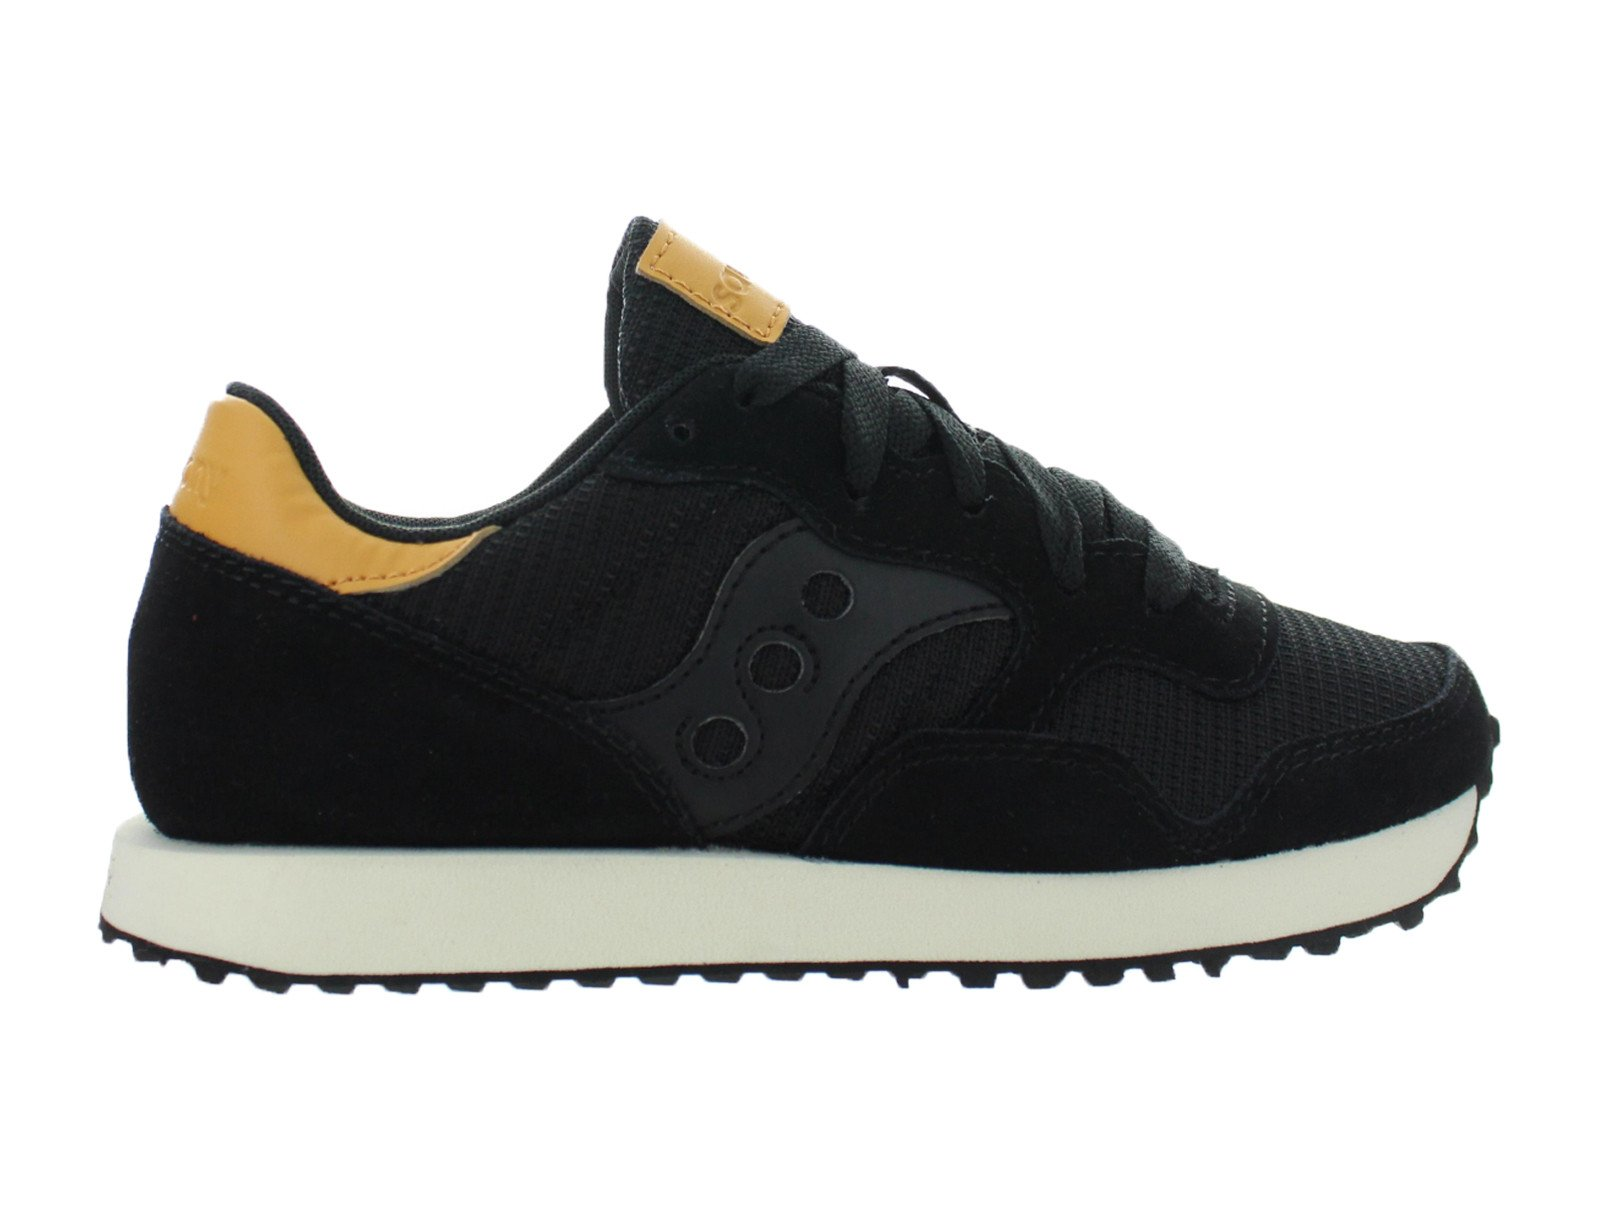 Womens Saucony DXN Trainer Black White S60124-50 by